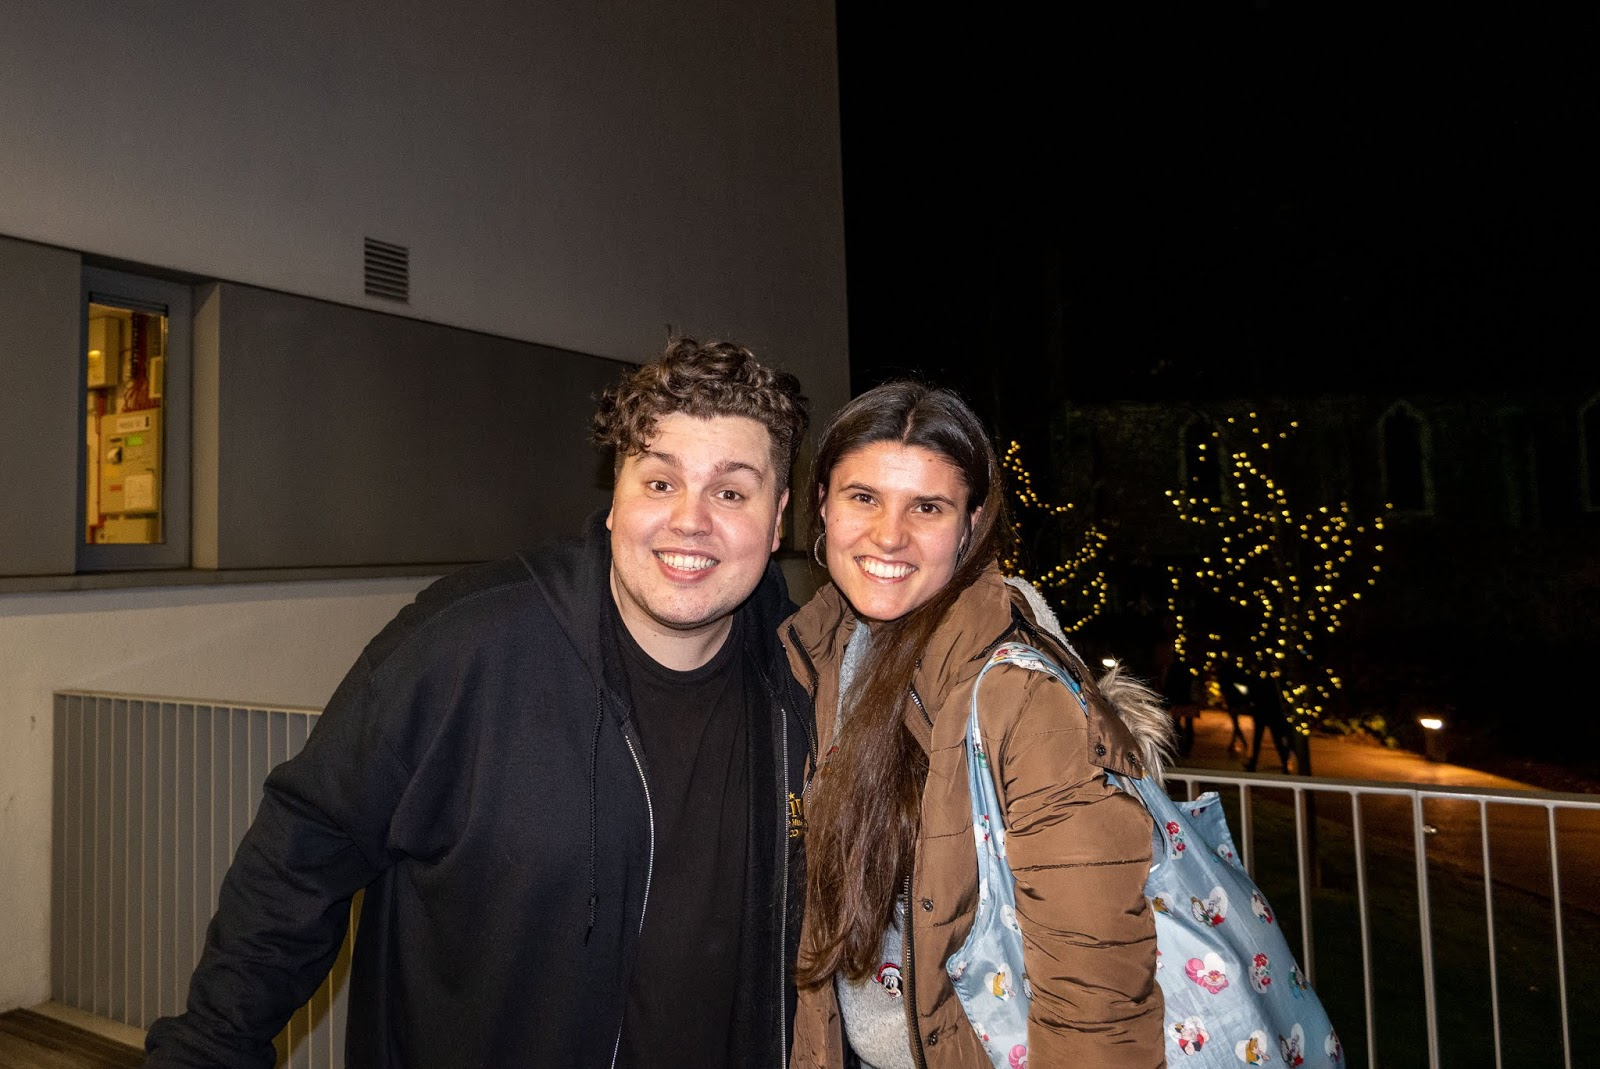 Meeting Mr Poppy (Scott Paige) at Stage Door after the show